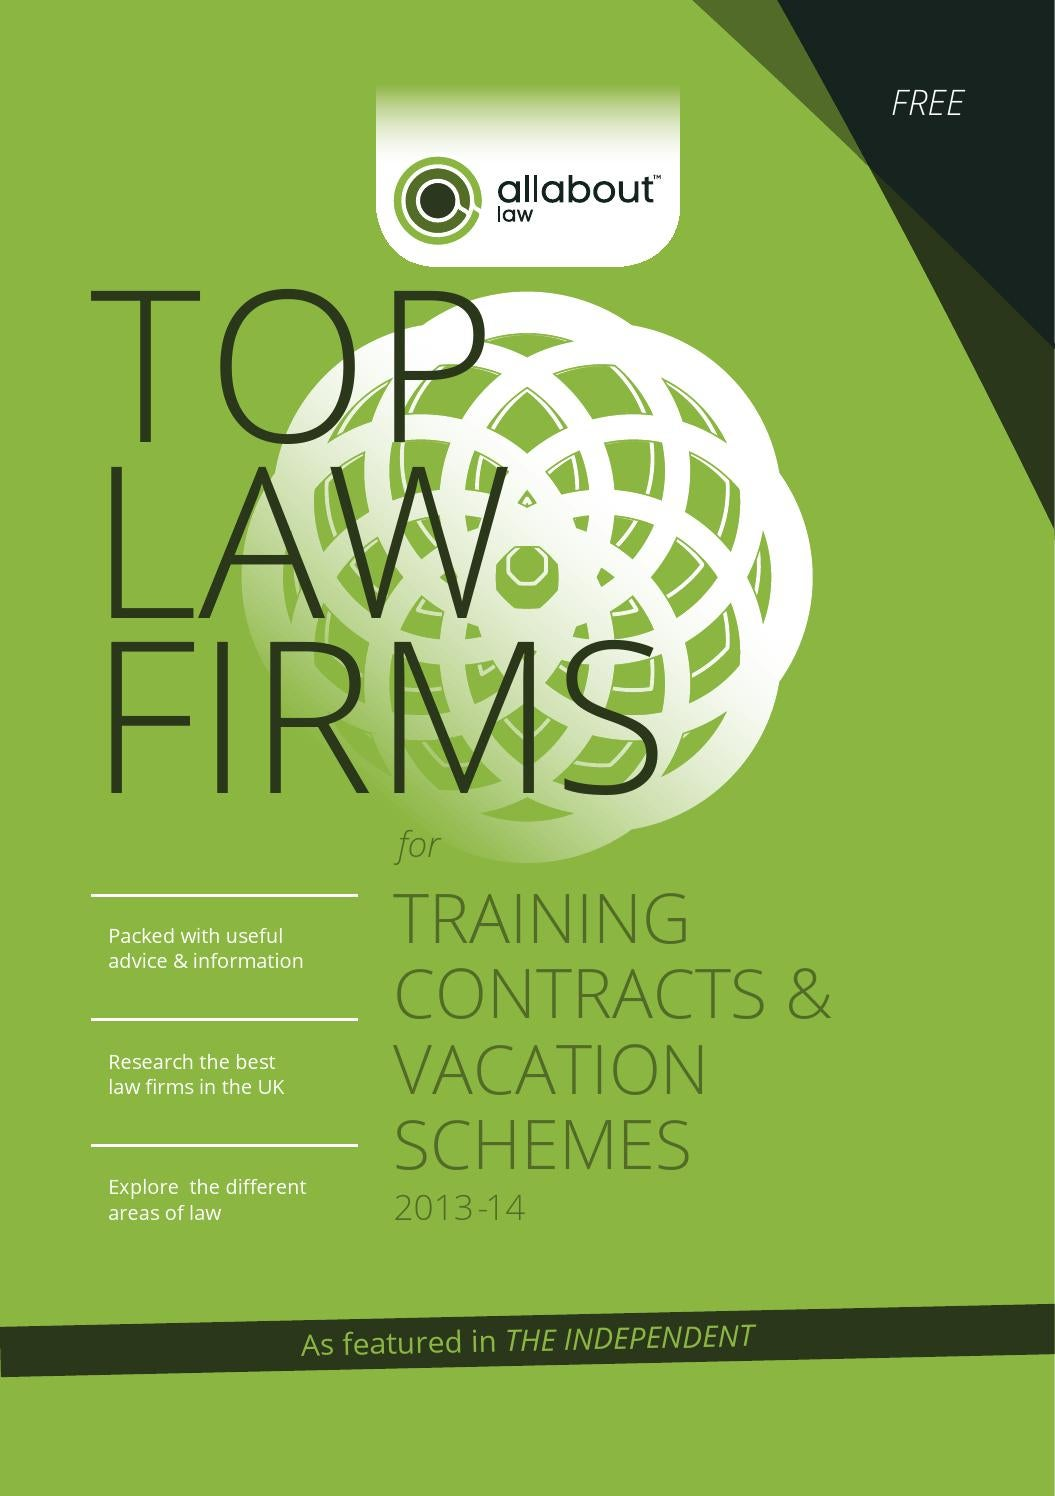 Allaboutlaw top law firms for training contracts vacation allaboutlaw top law firms for training contracts vacation schemes 2013 14 by allaboutgroup issuu madrichimfo Gallery